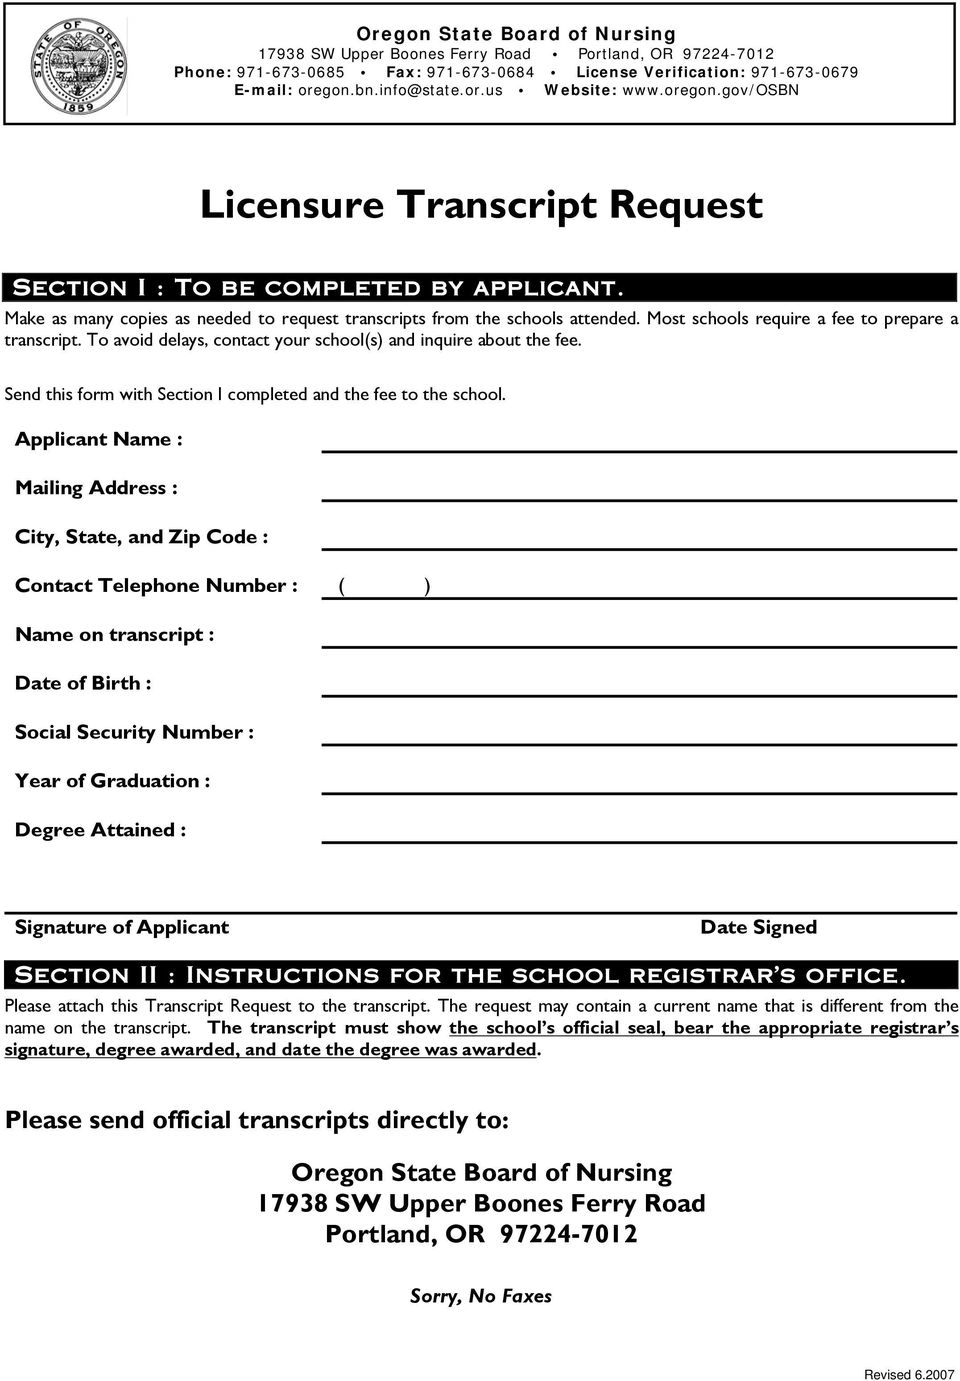 Send this form with Section I completed and the fee to the school.